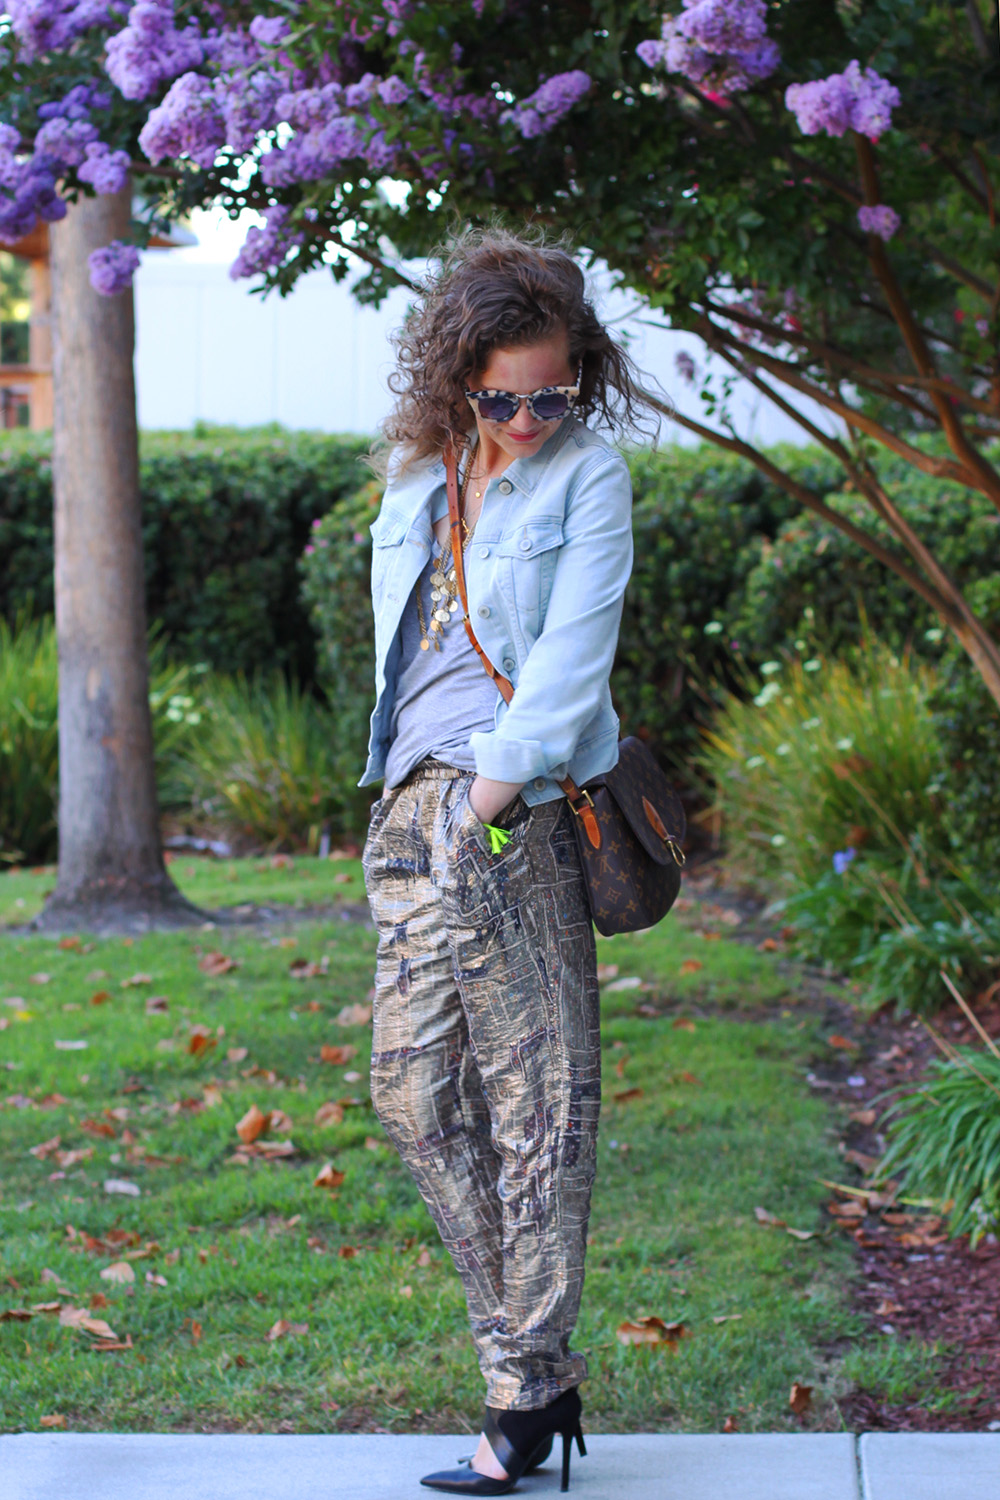 Isabel Marant pour HM gold lamé (gold lame) pants are casual cool when paired with denim and a tee on undeniablestyle.com